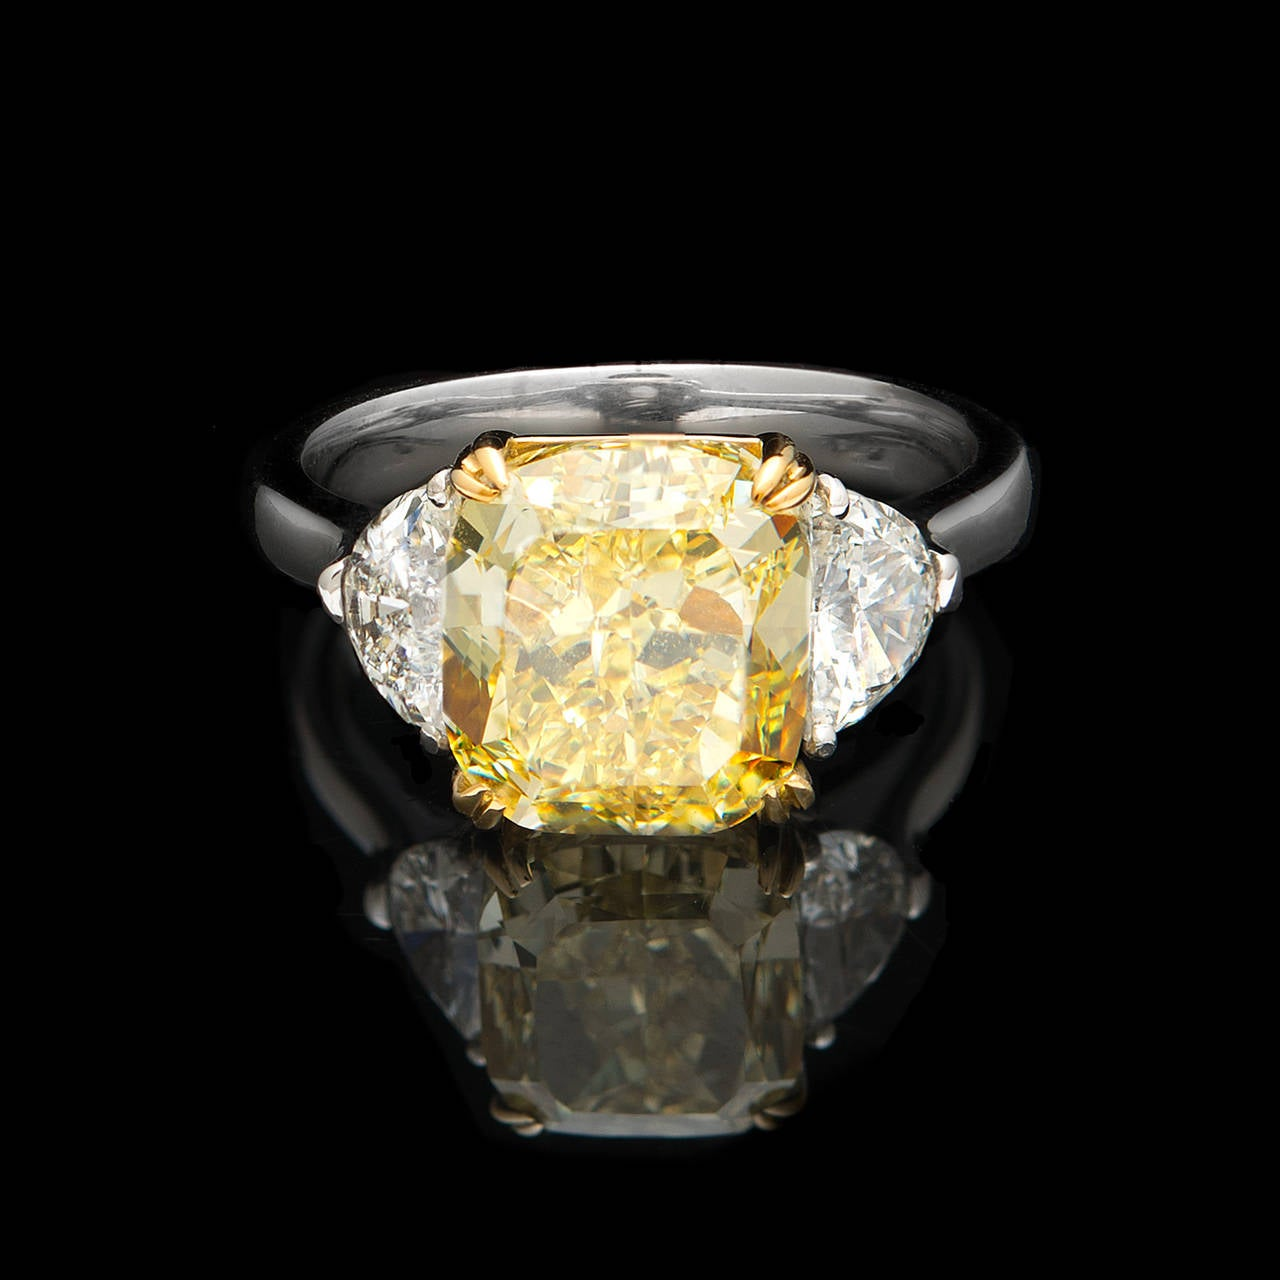 Natural Fancy Intense 5 01 Carat Yellow Diamond Gold Ring For Sale at 1stdibs